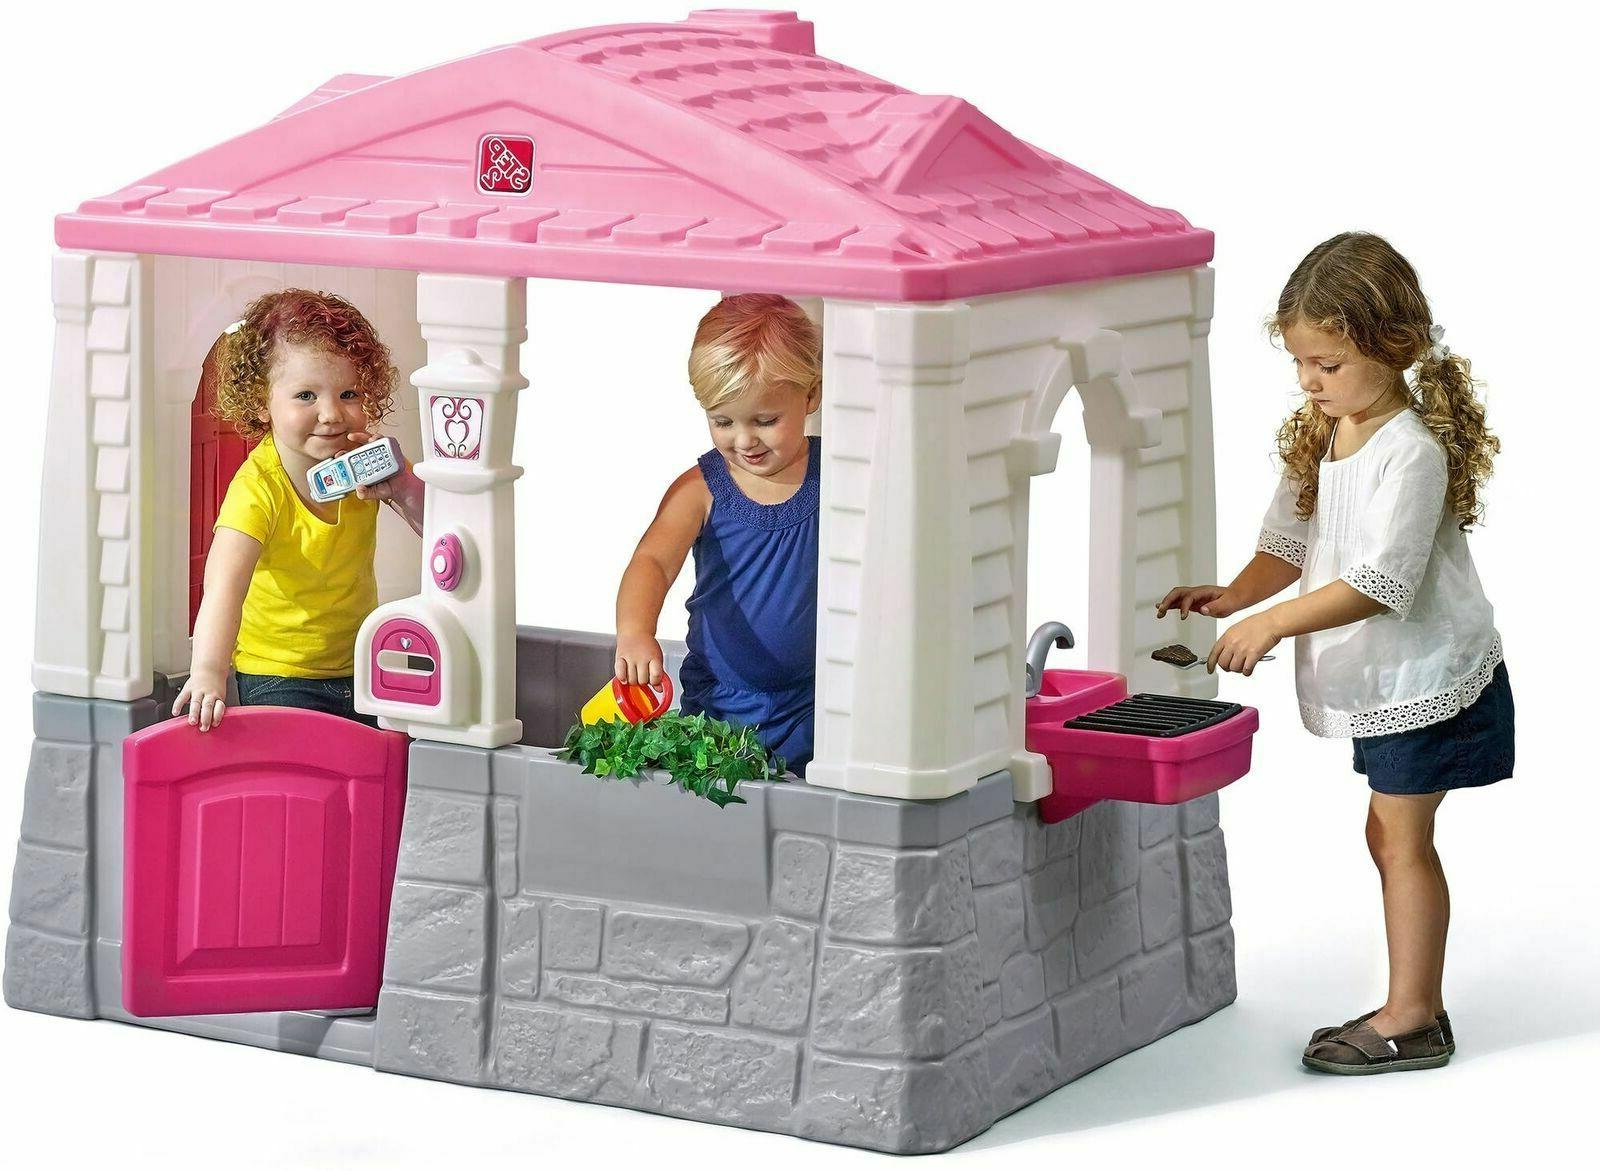 Kids Plastic Child Toddler Play House Toy Girls